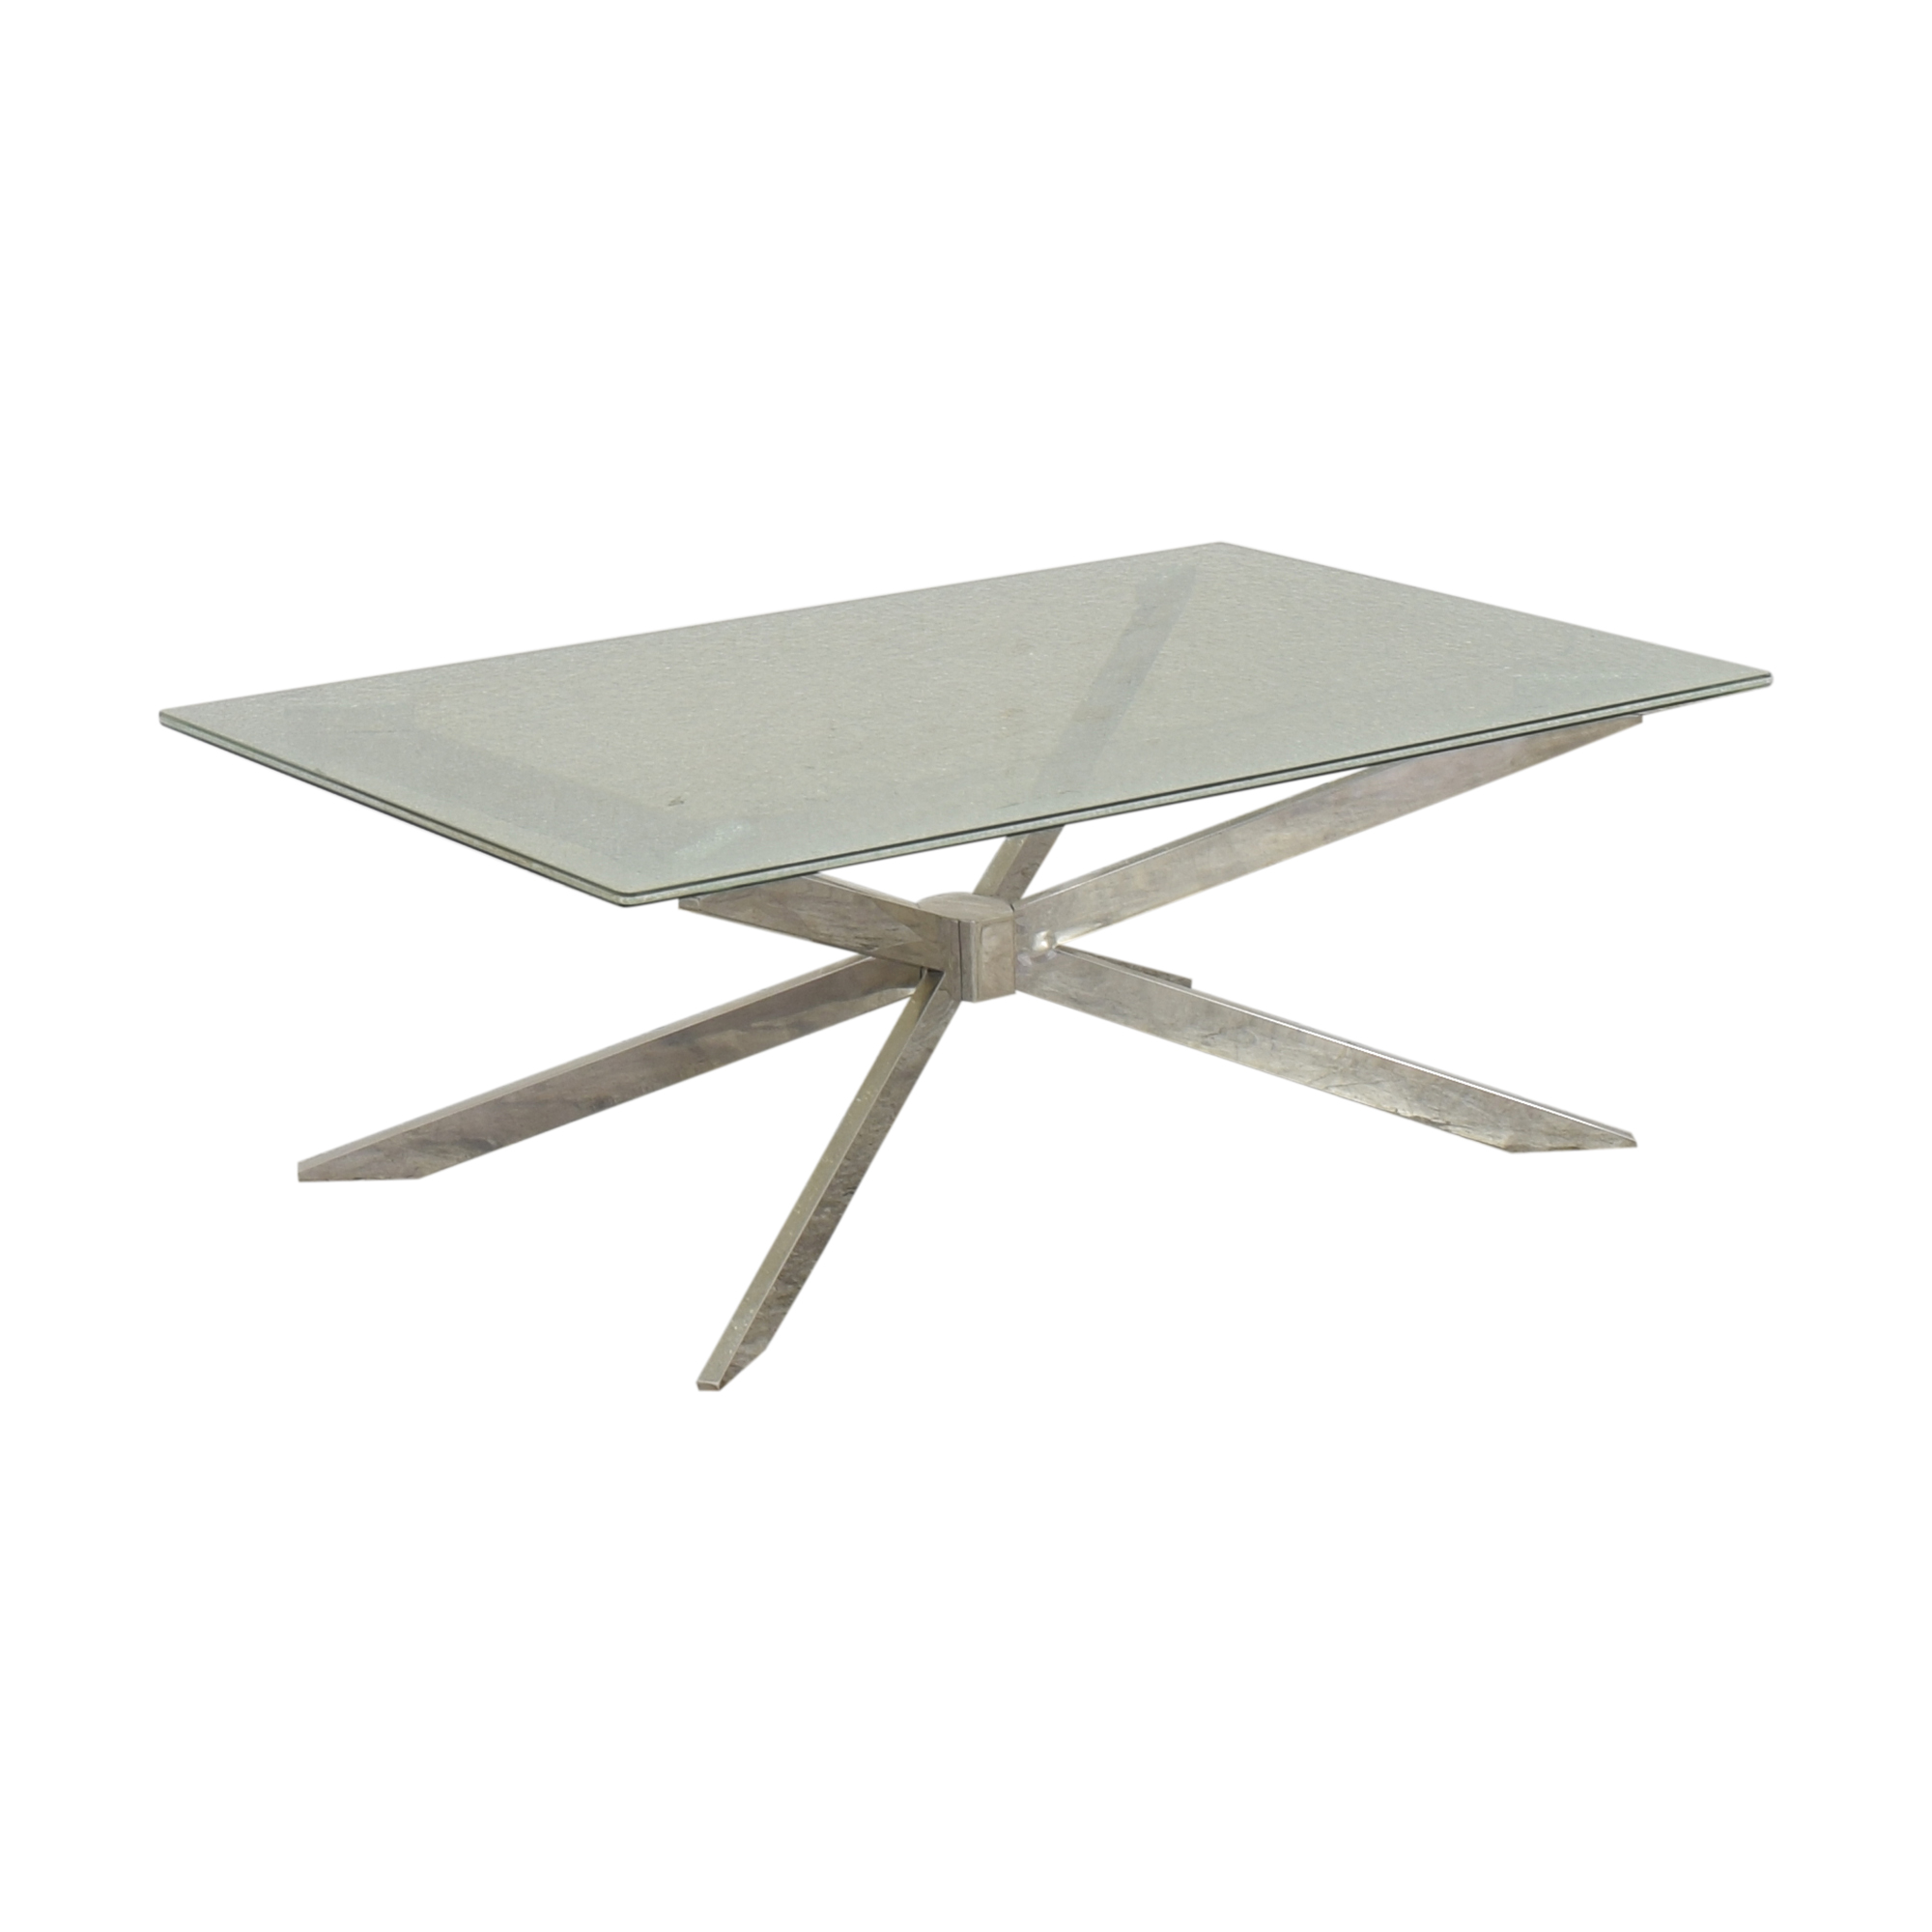 Raymour & Flanigan Raymour & Flanigan Contemporary Cocktail Table for sale